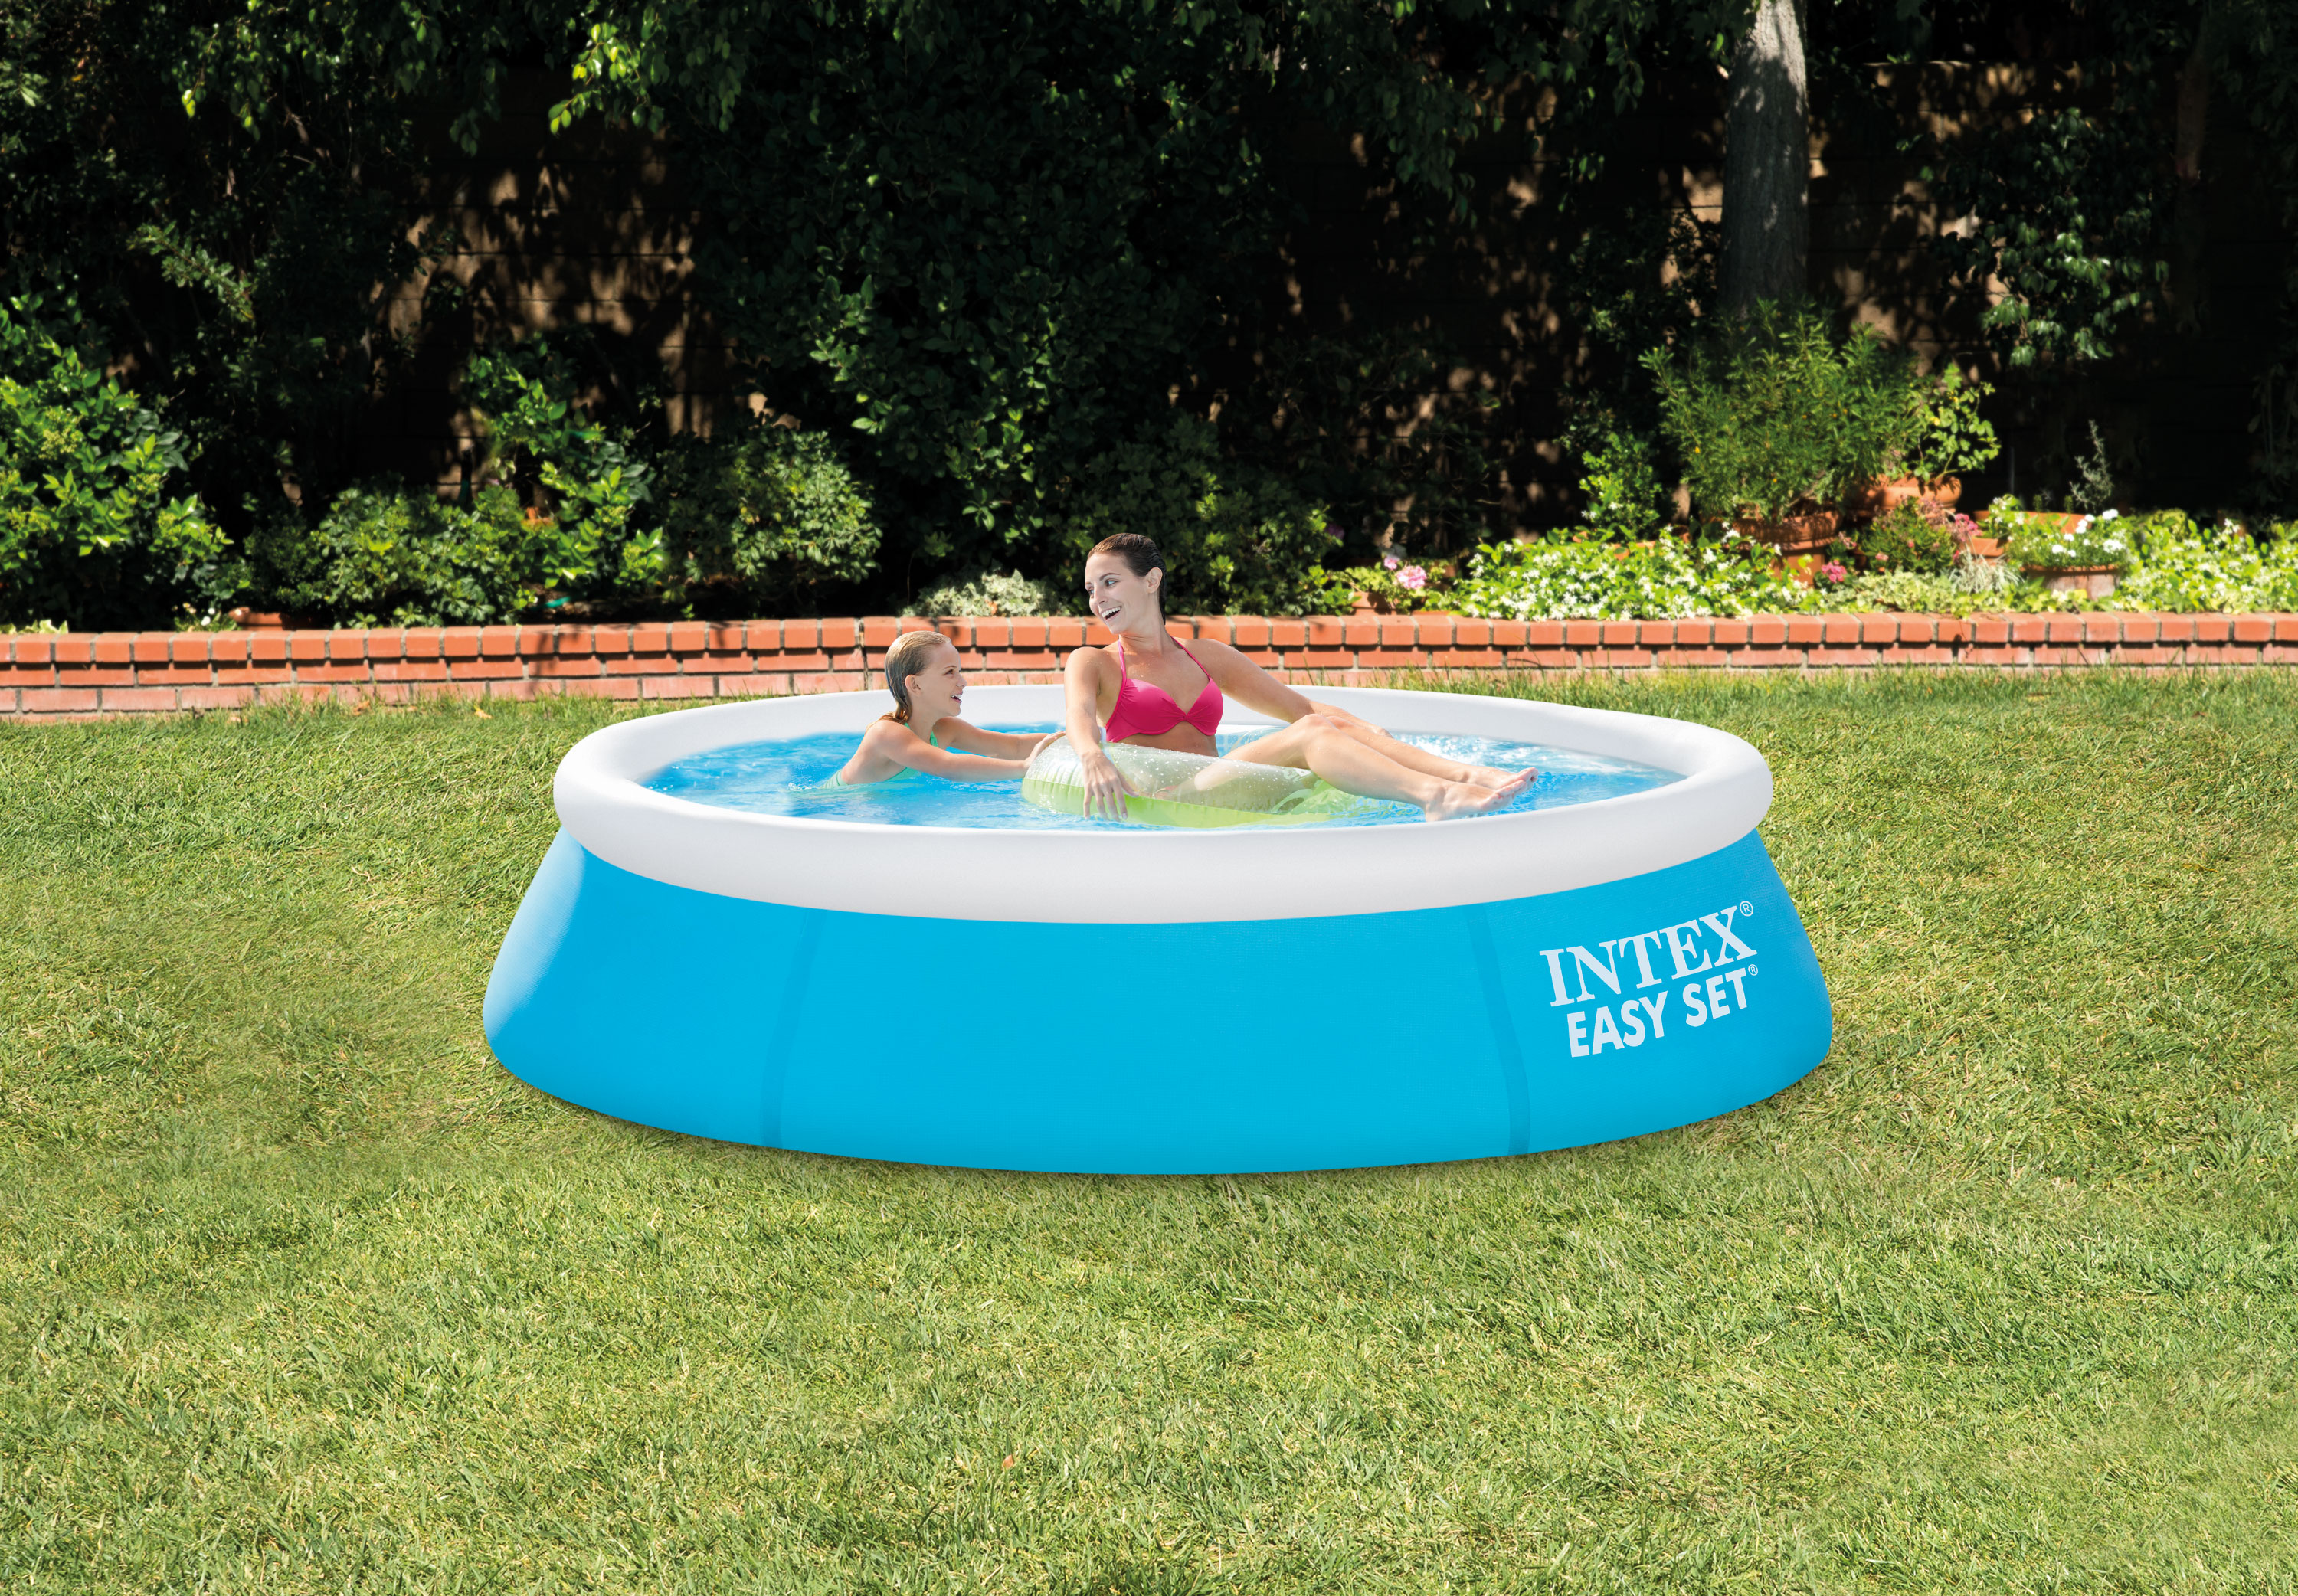 Intex 6 39 x 20 easy set inflatable swimming pool aqua for Piscine gonflable intex easy set